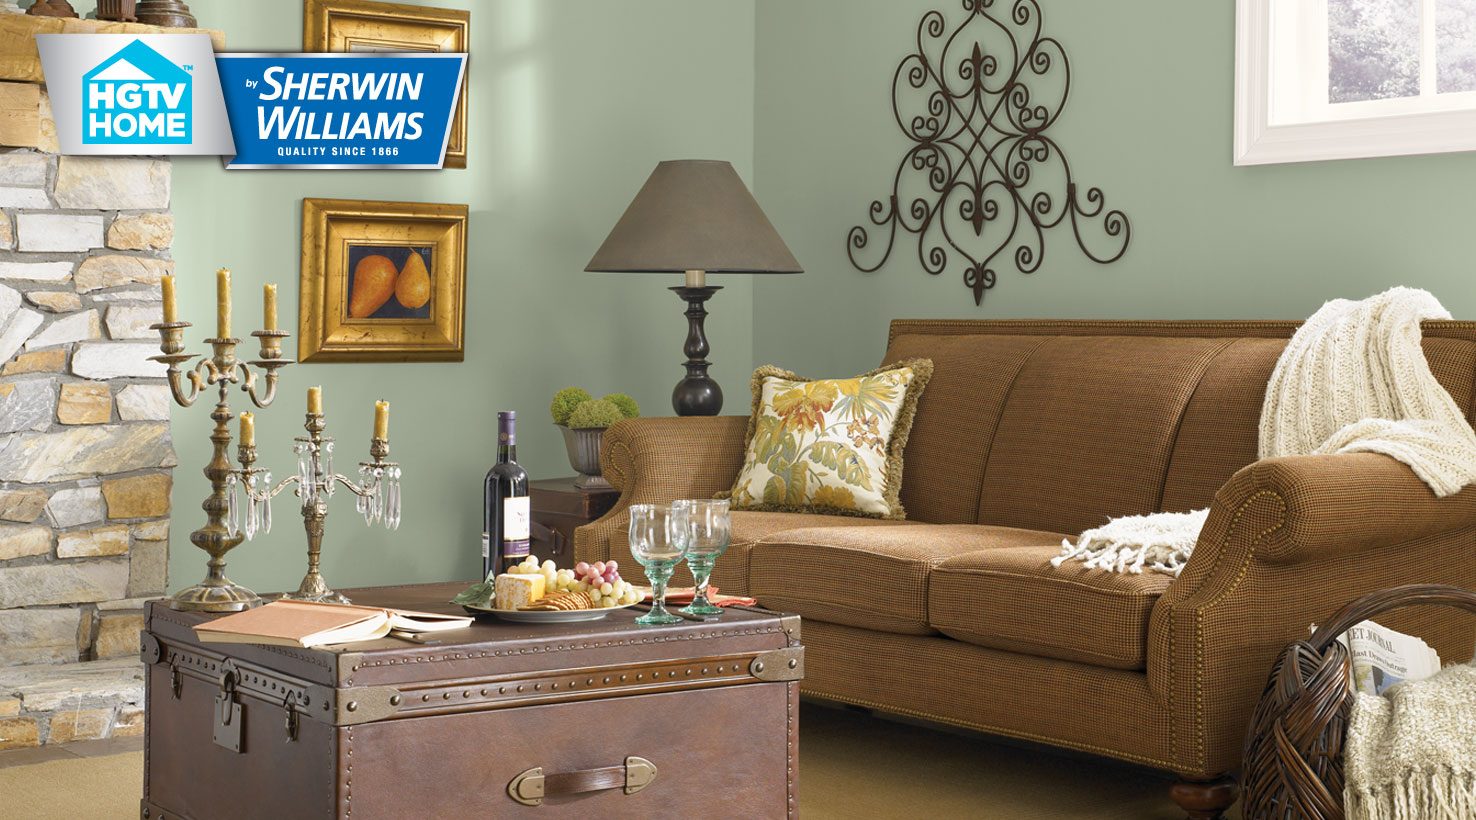 Living Room Paint Colors Rustic rustic refined paint color collection | hgtv home™sherwin-williams